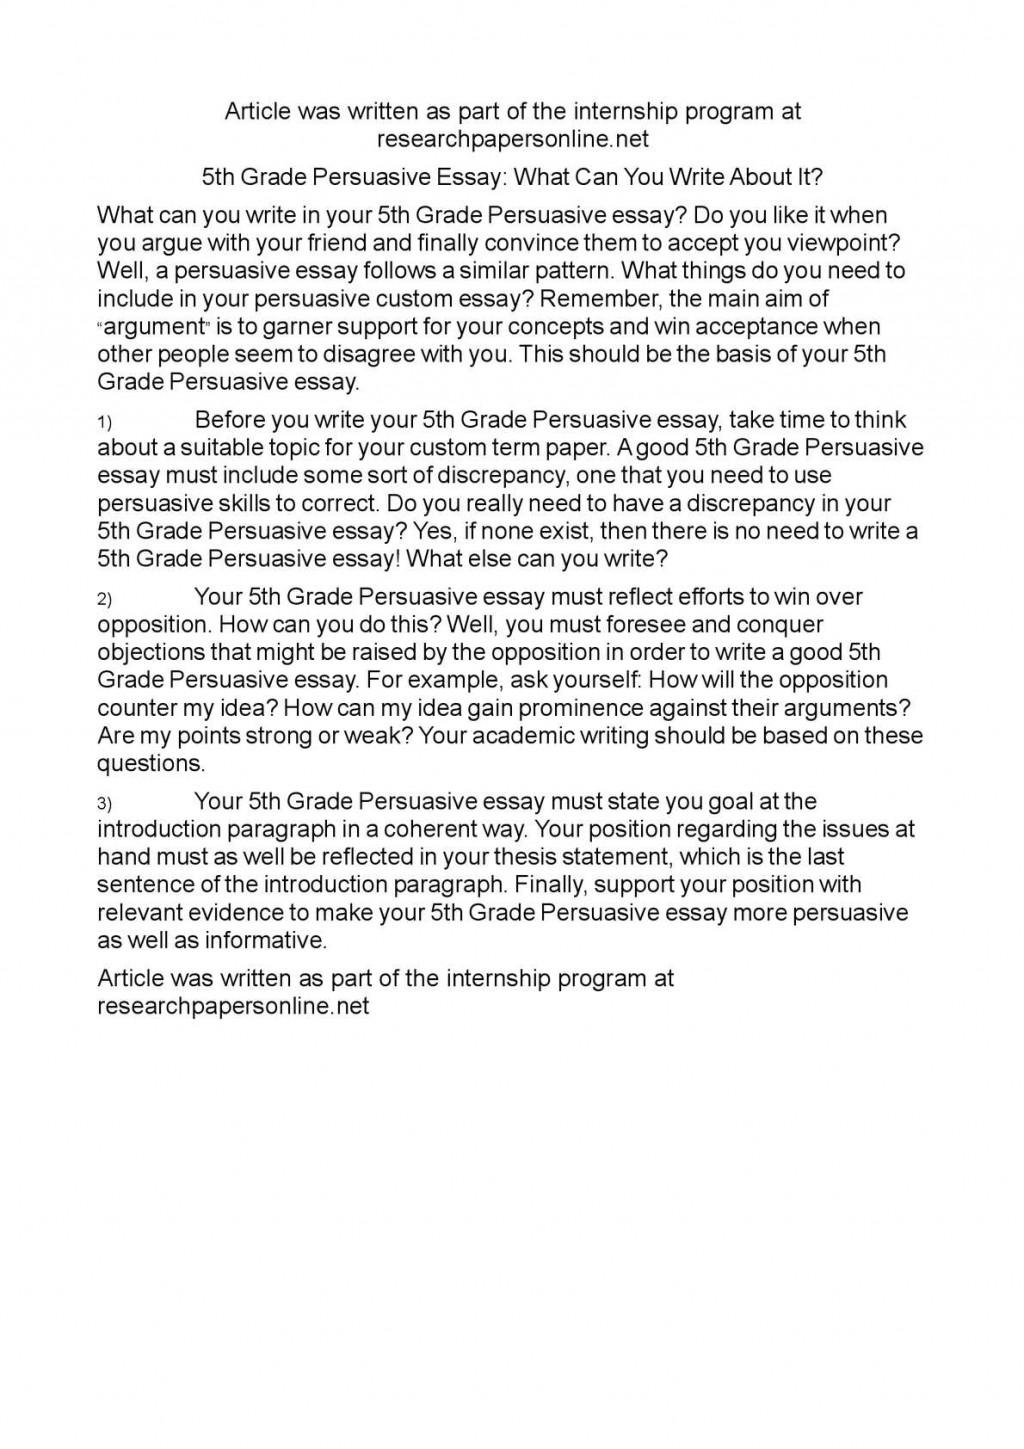 005 Persuasive Essay Writing For 5th Grade Example Impressive Essays Written By Fifth Graders A Prompts Large